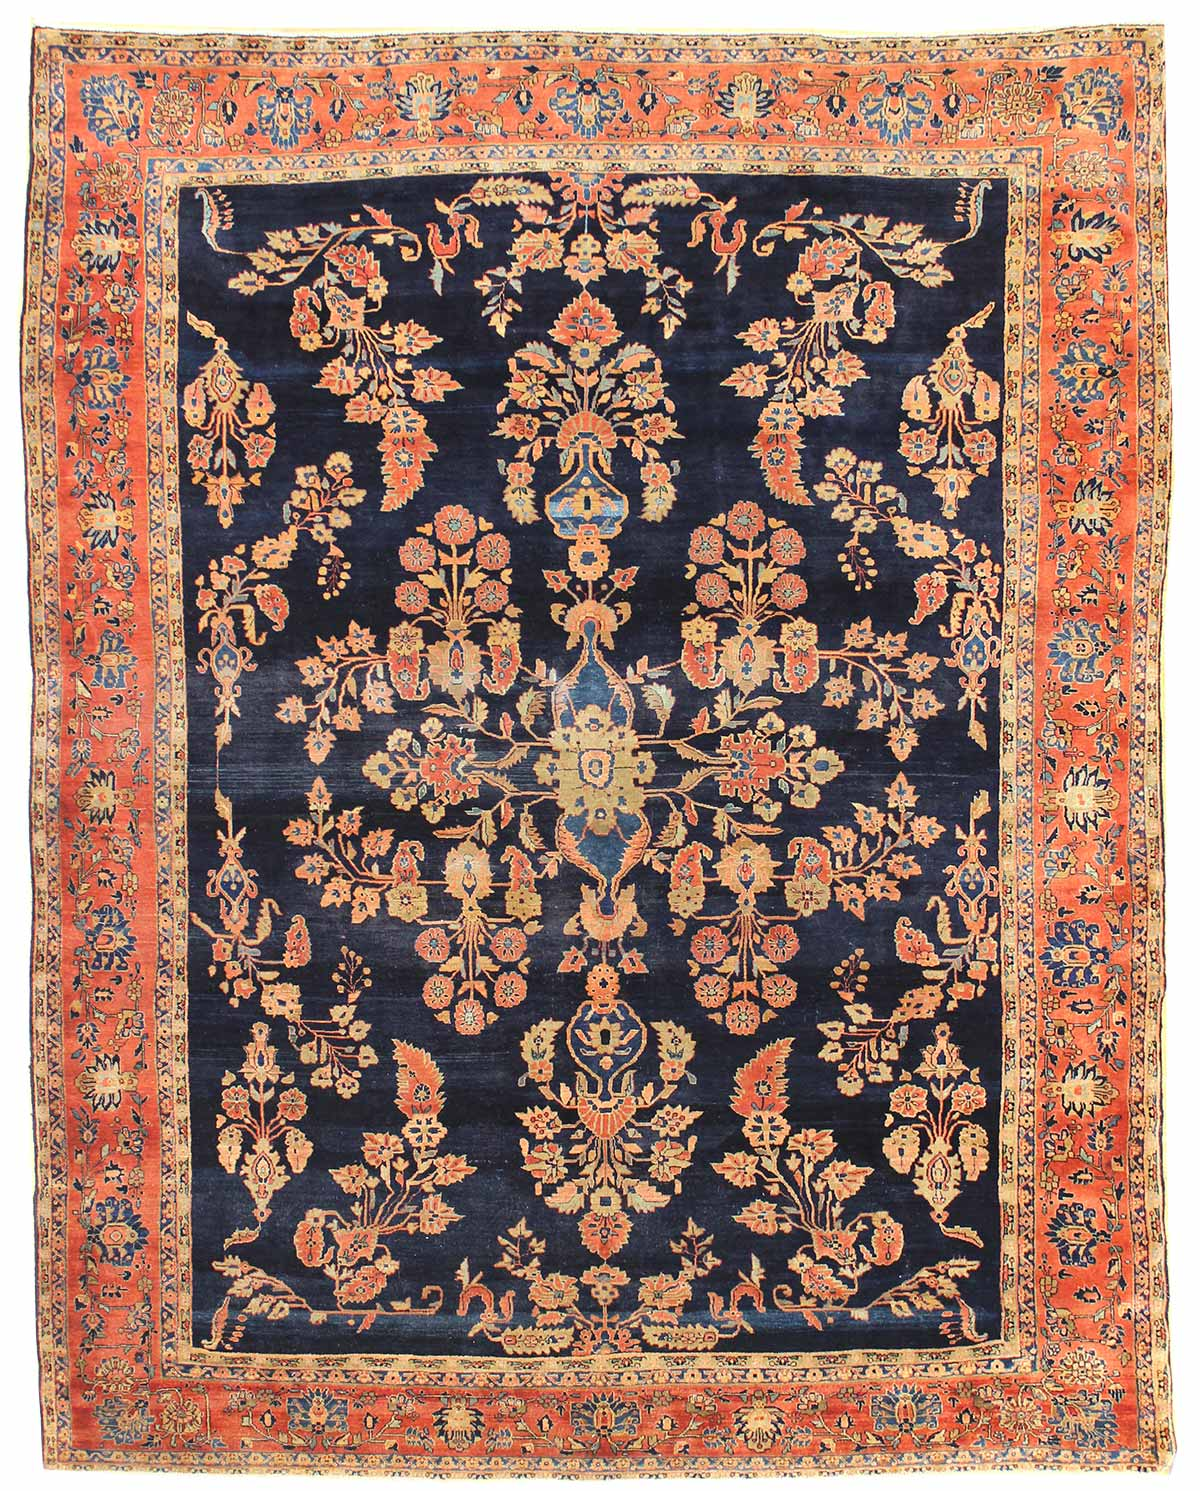 Antique Sarouk Handwoven Traditional Rug